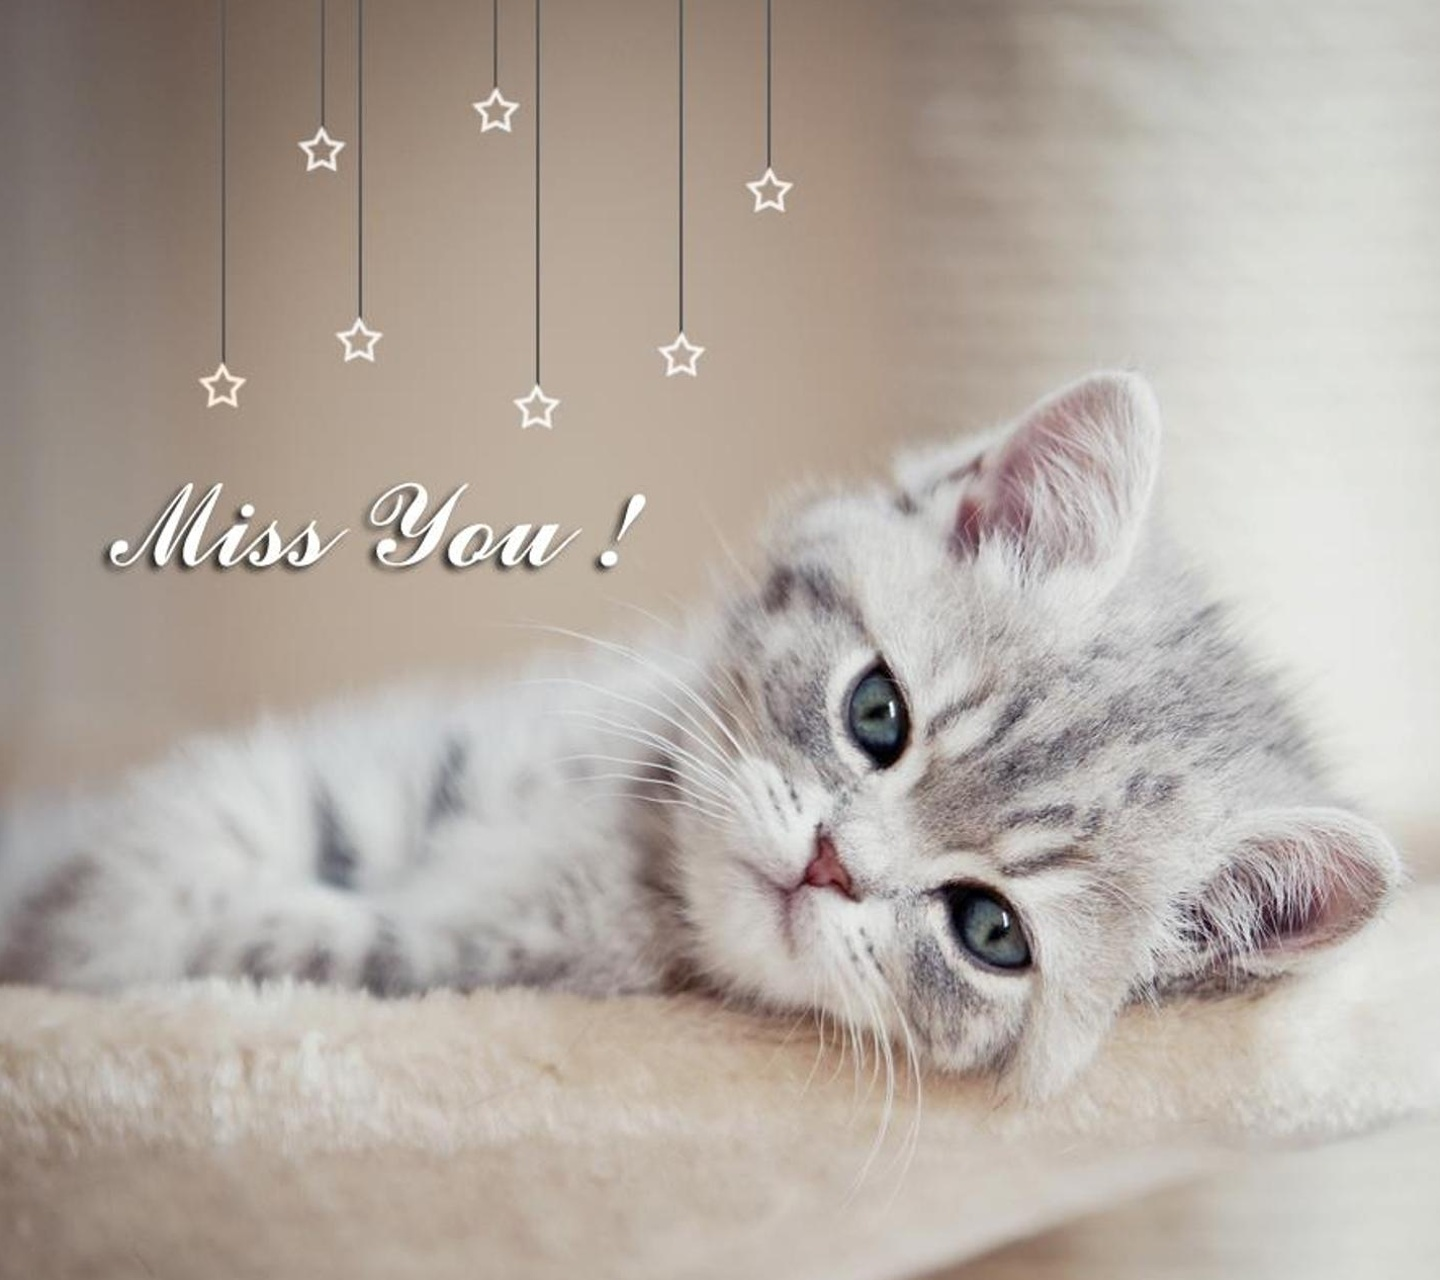 Sad Love Quotes For Him Wallpaper Cute Kittens And Funny Cats Photos Topbestpics Com